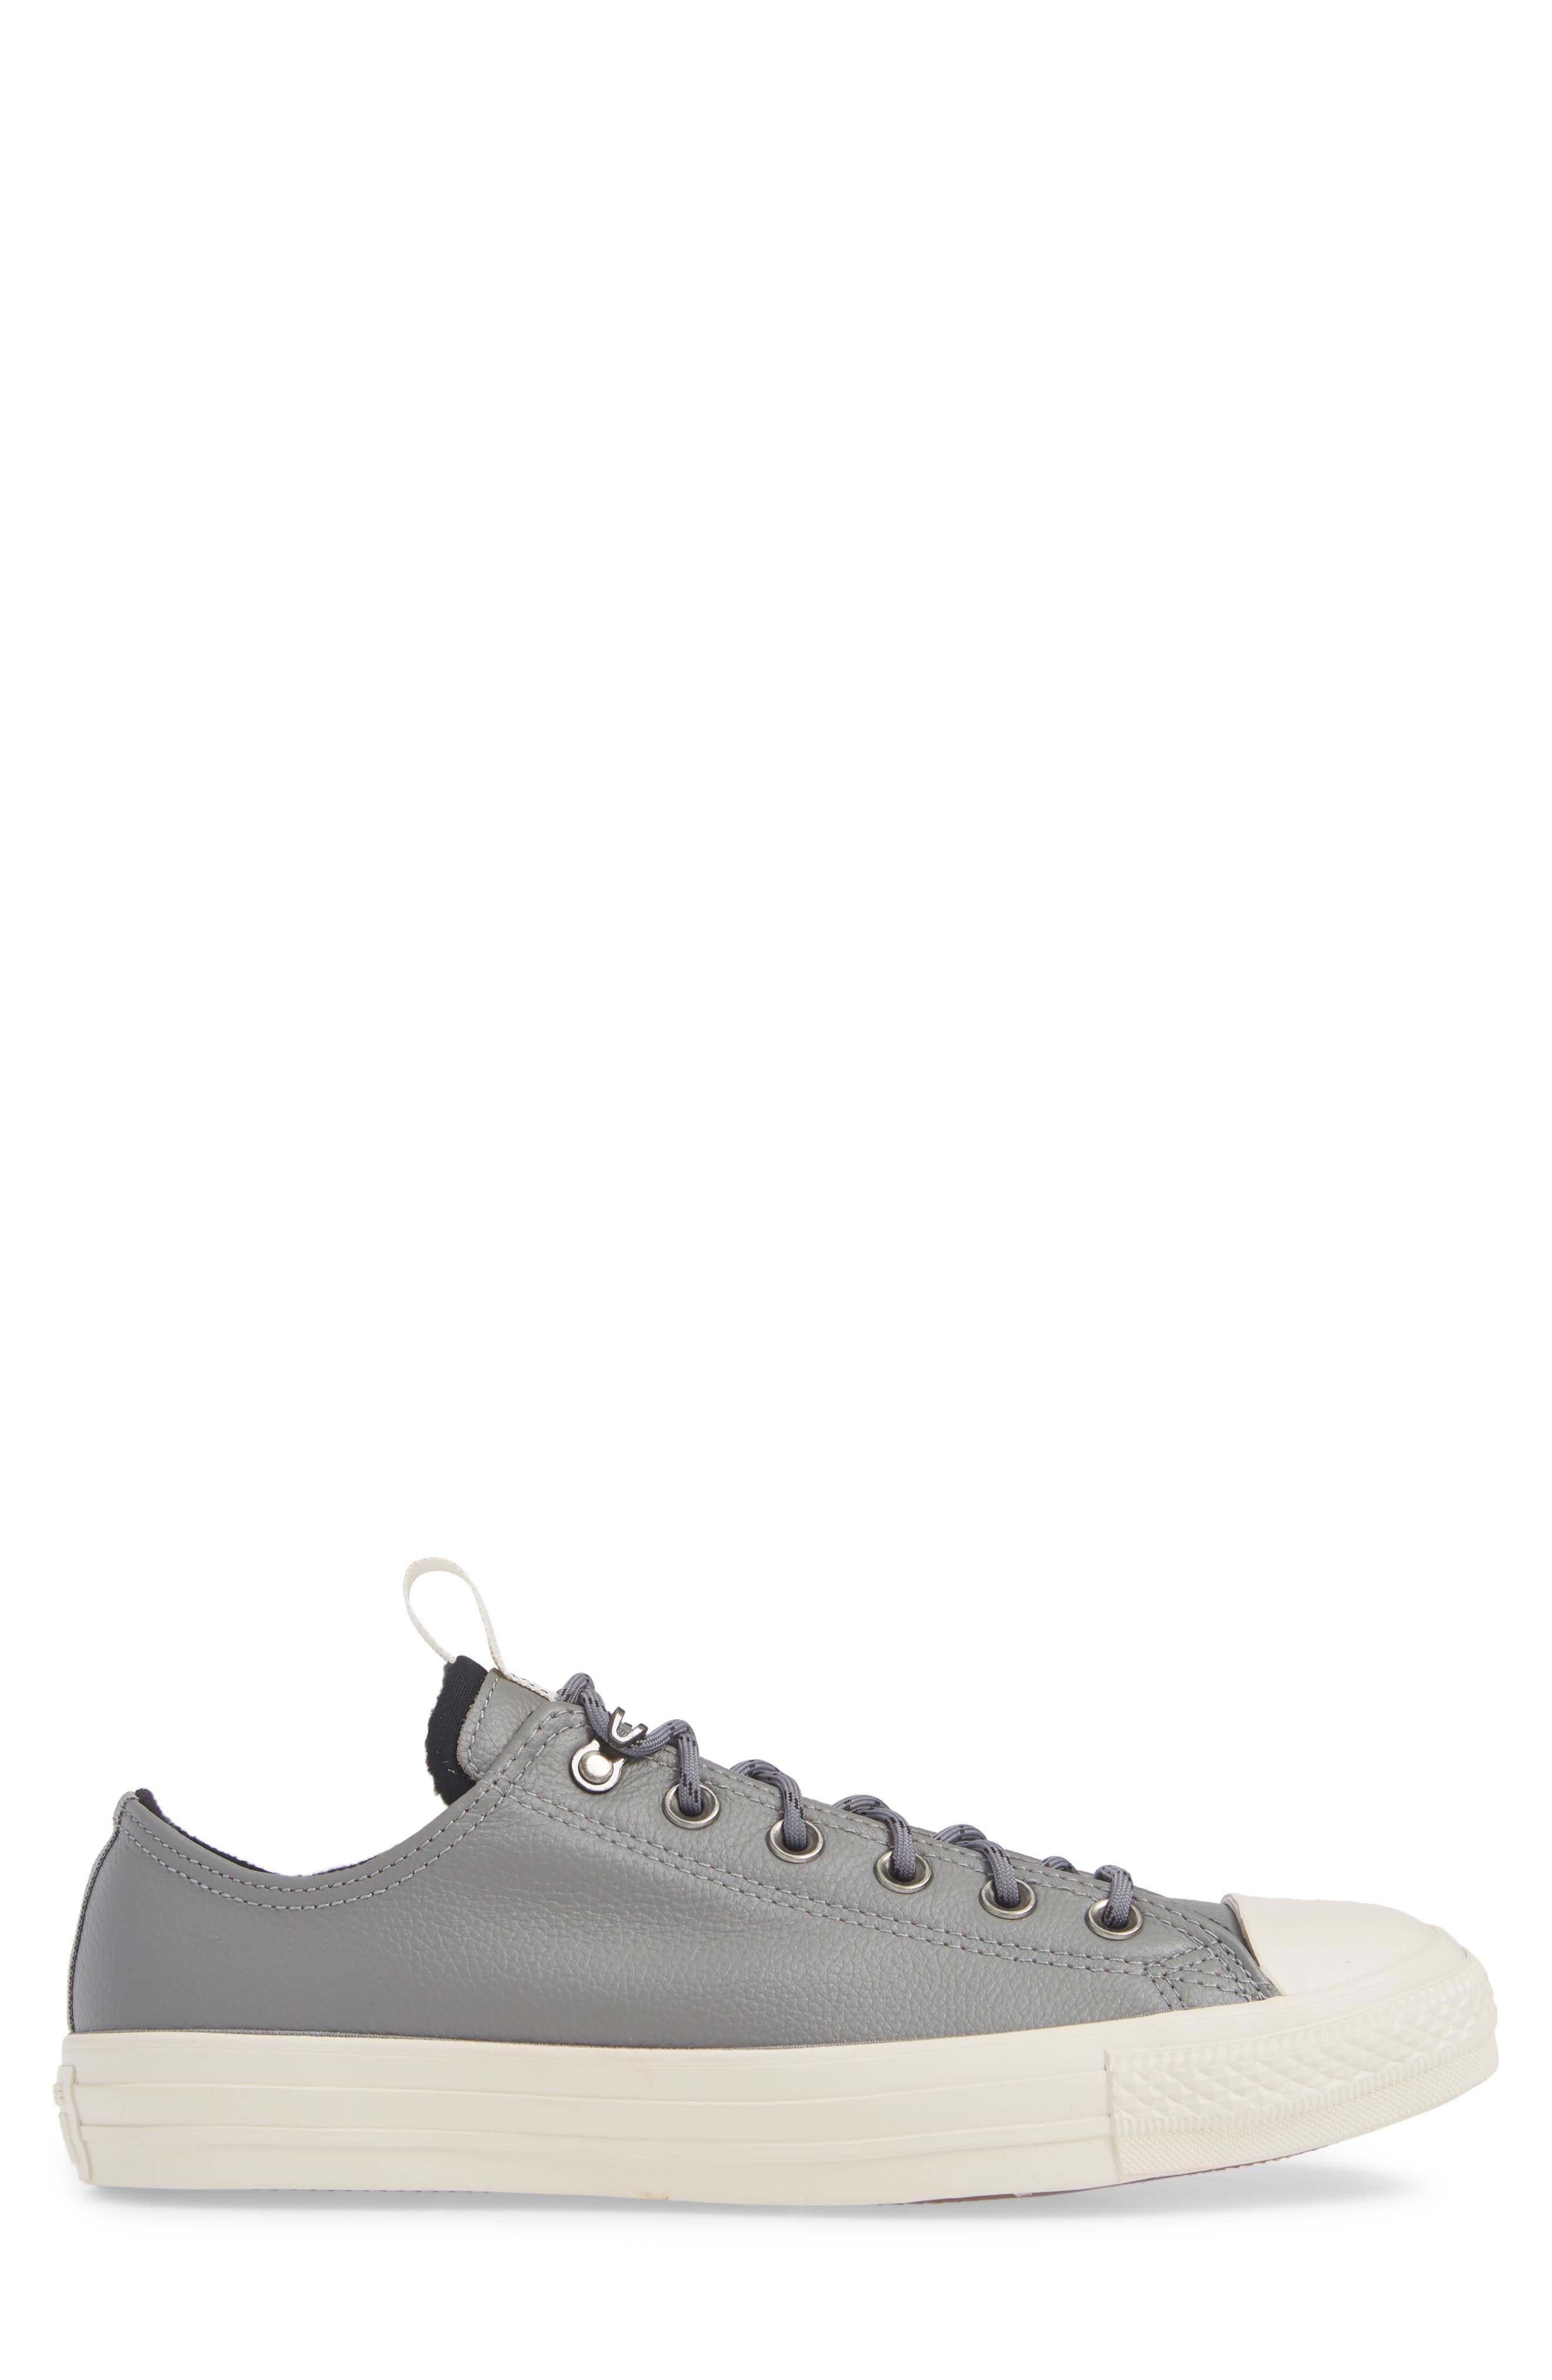 Chuck Taylor<sup>®</sup> All Star<sup>®</sup> Desert Storm Ox Sneaker,                             Alternate thumbnail 3, color,                             WHITE/ LIGHT FAWN/ EGRET